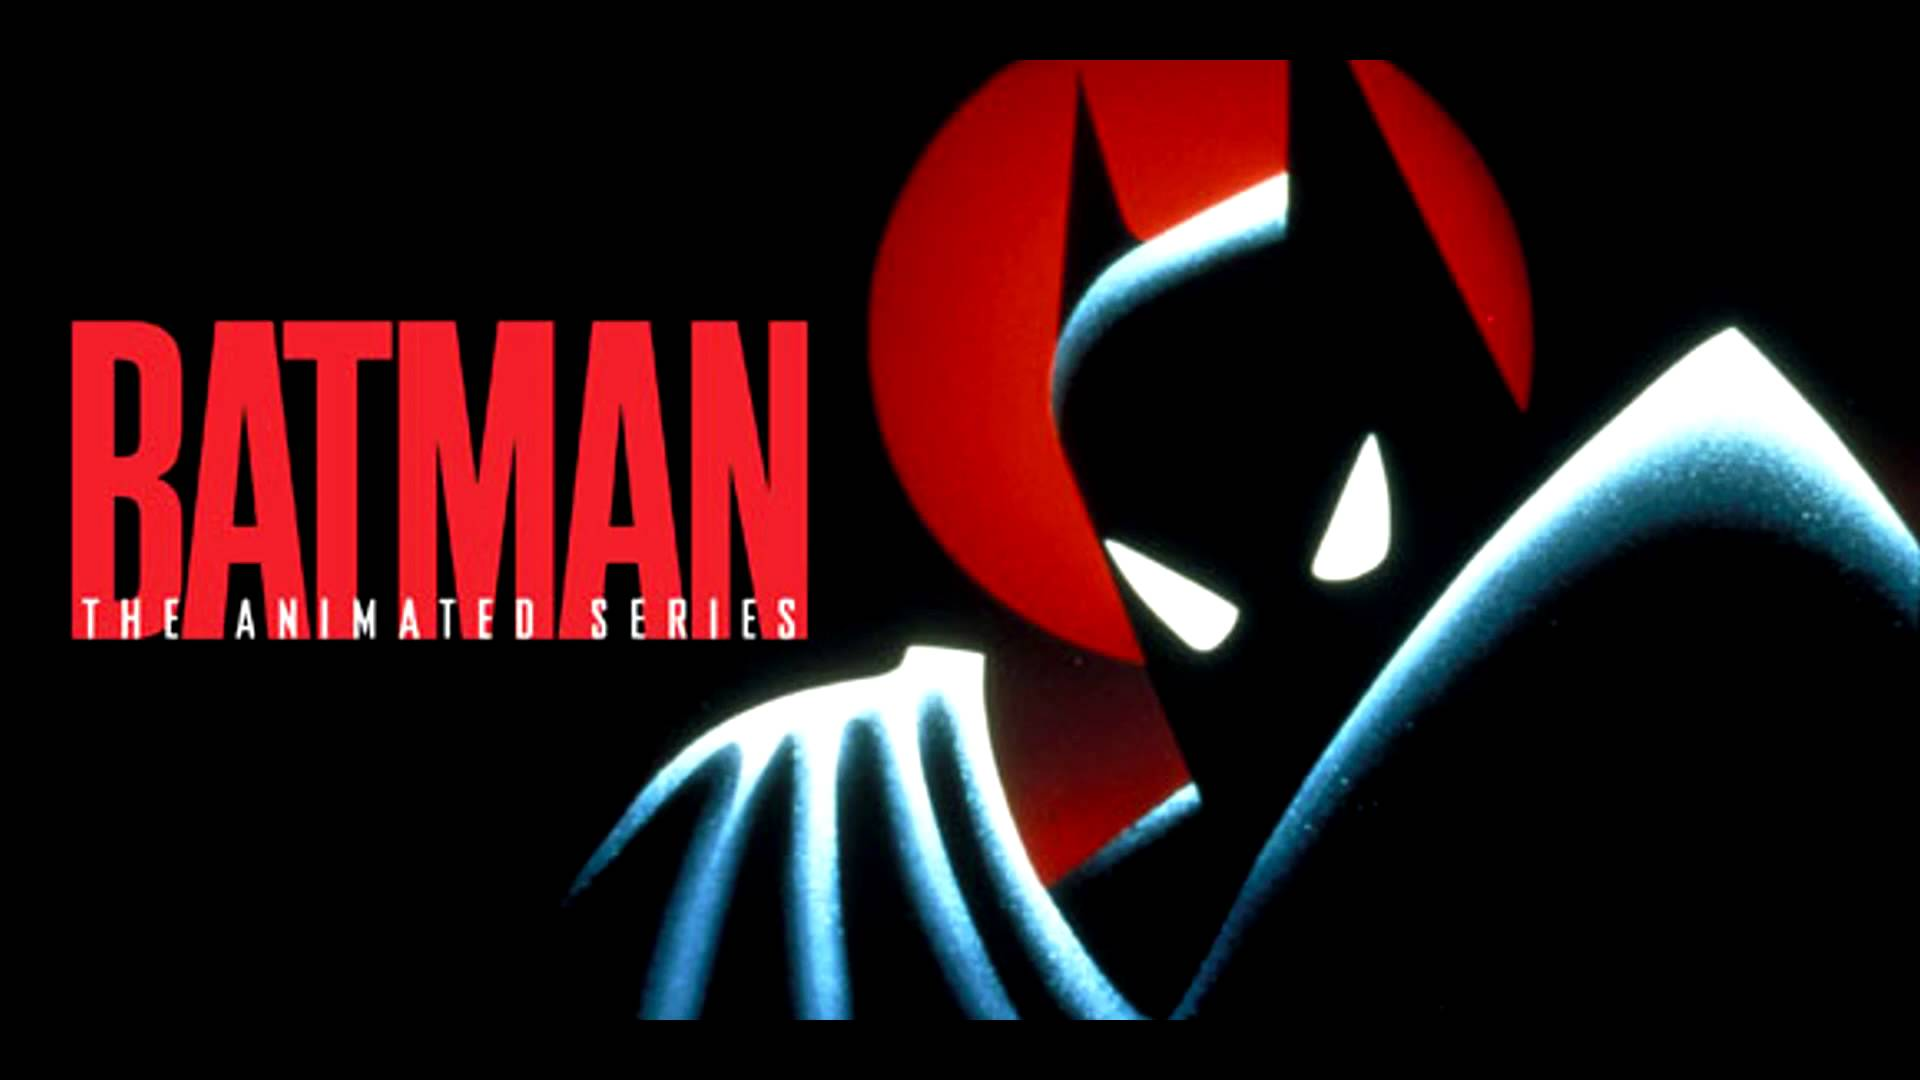 Images of Batman: The Animated Series | 1920x1080